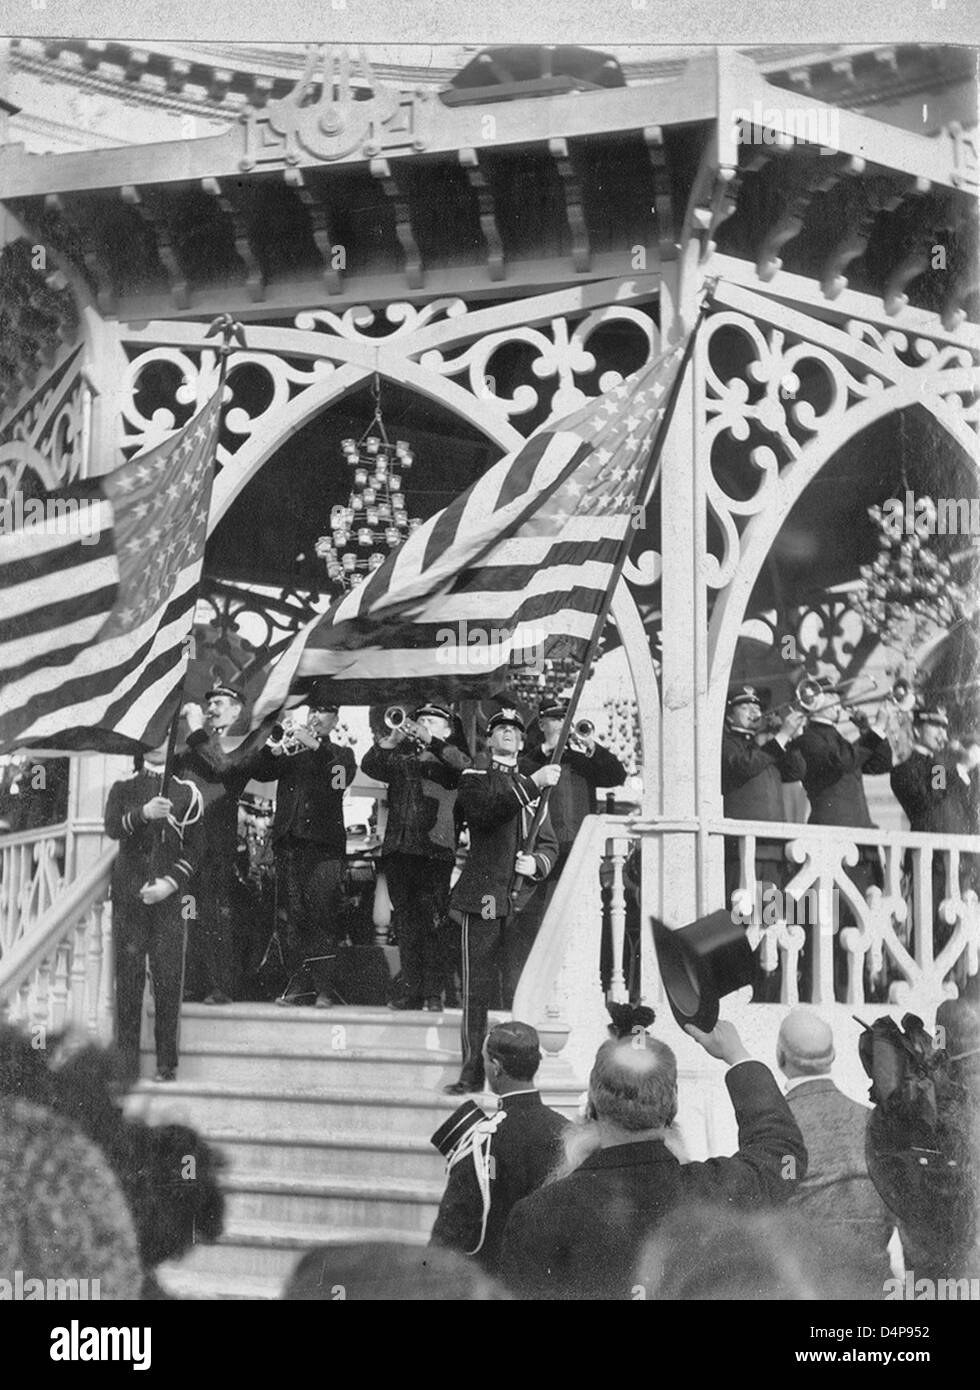 John Philip Sousa Band playing on bandstand while two band members stand on stairs, waving American flags - Paris - Stock Image